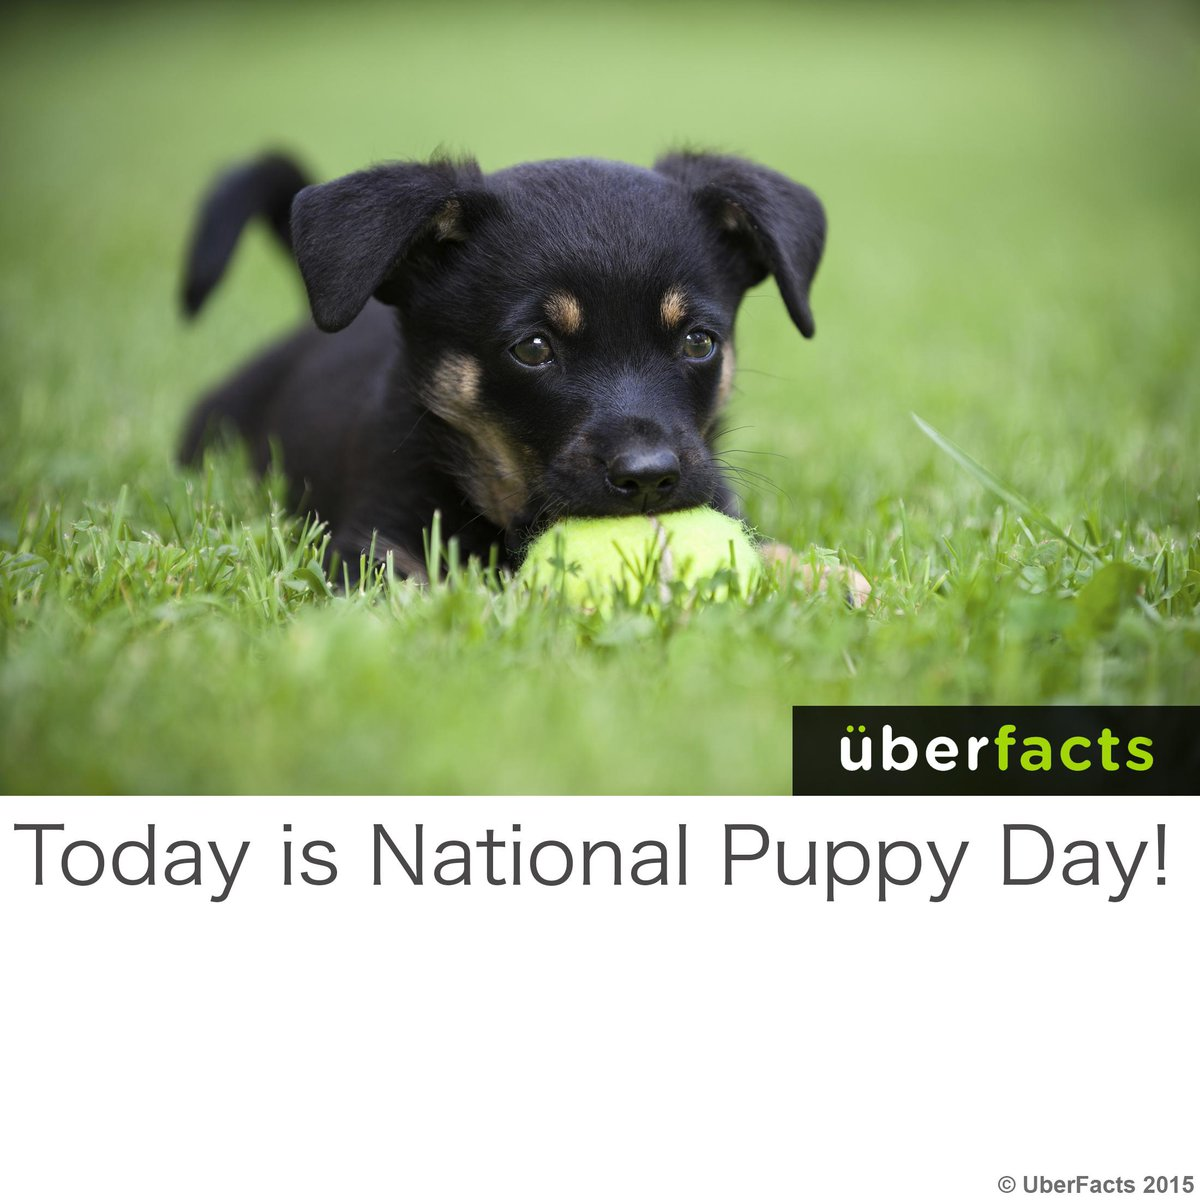 Happy #NationalPuppyDay! http://t.co/Wt6AKKh36F